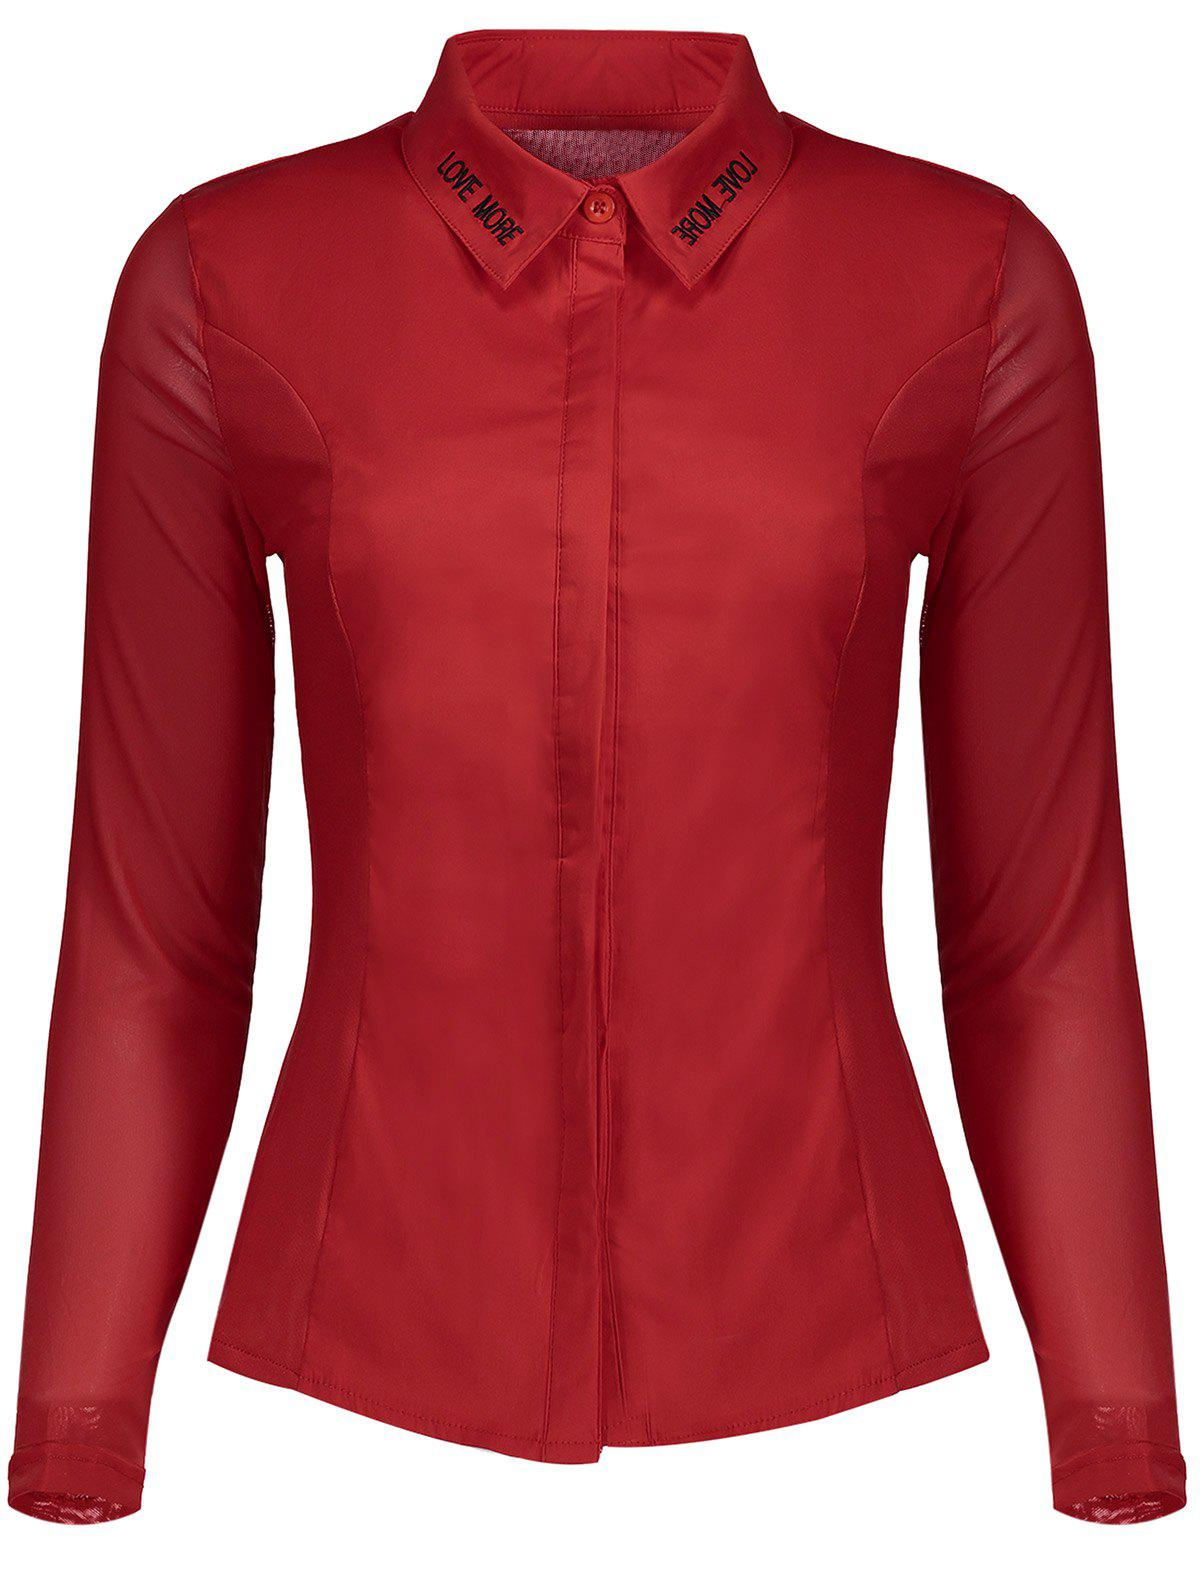 Mesh Insert Embroidery ShirtWomen<br><br><br>Size: XL<br>Color: RED